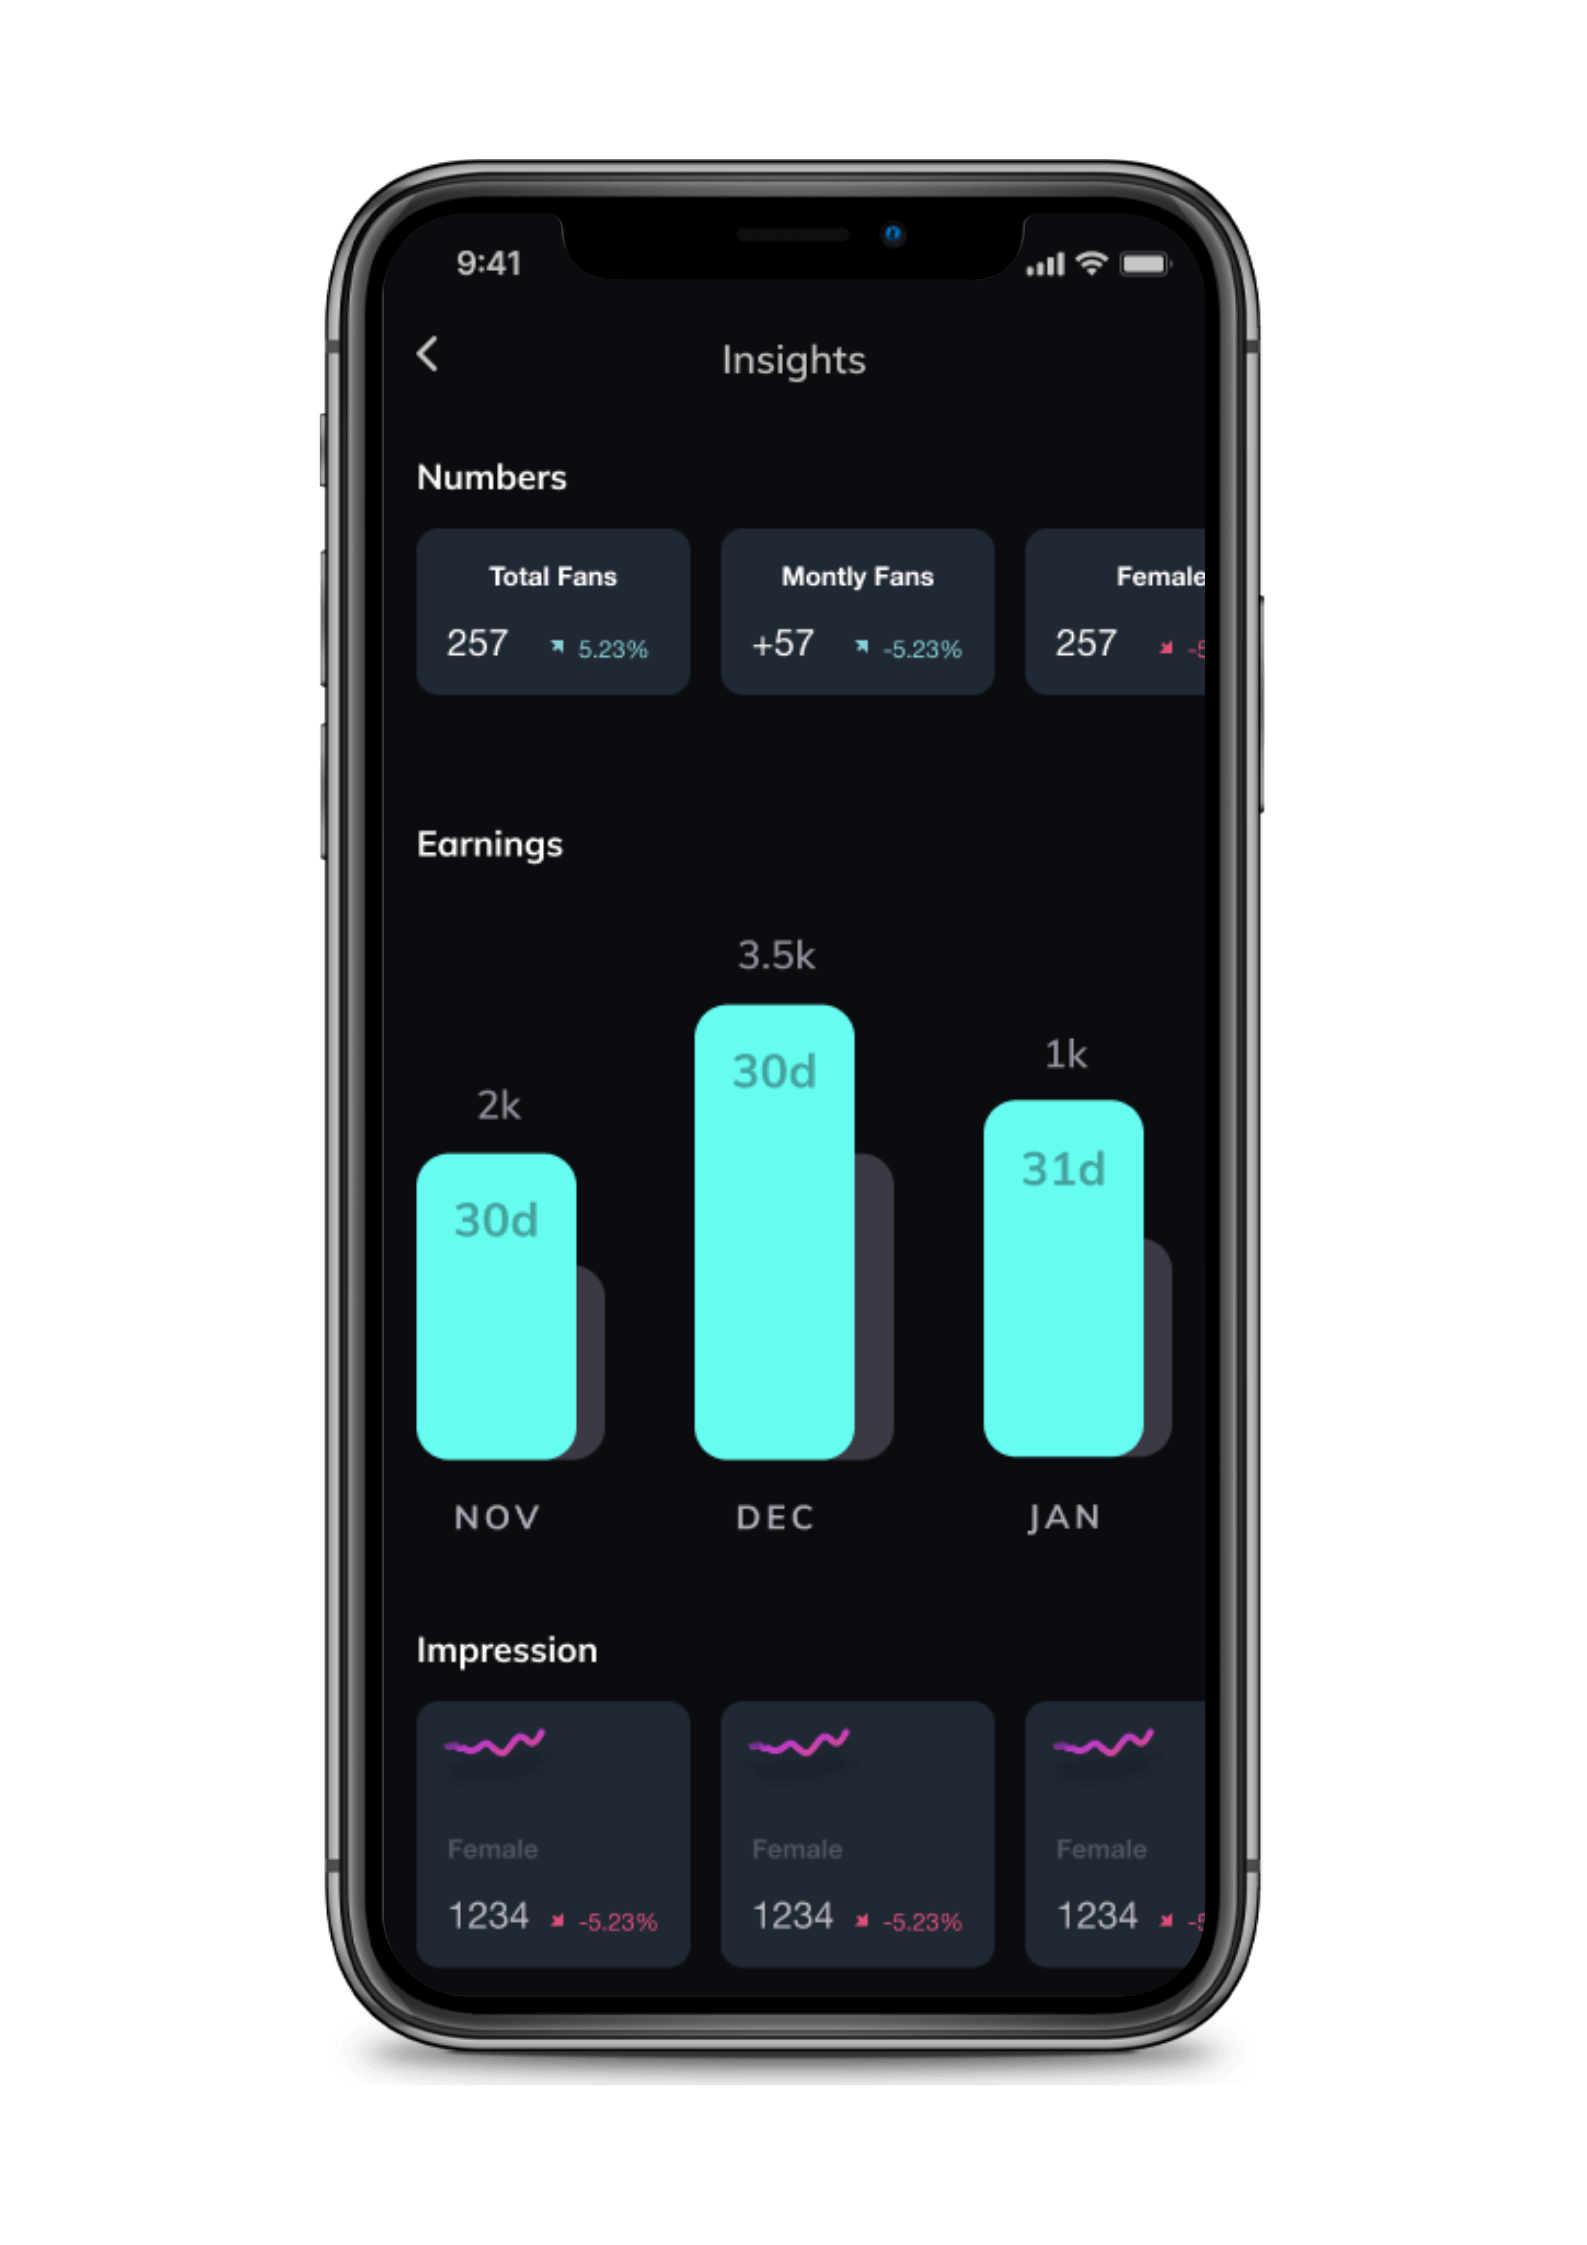 The Backstage App Earnings Insights